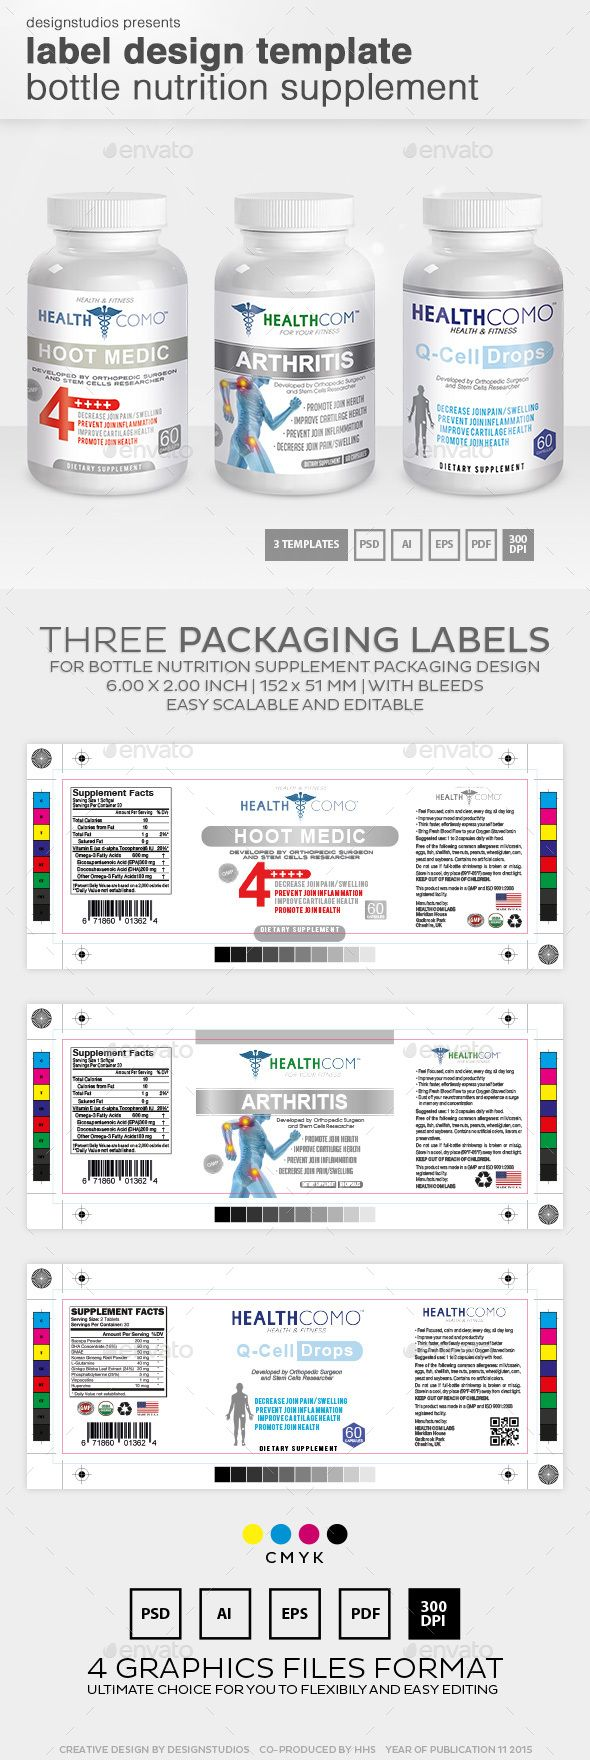 Label Design Template Bottle Nutrition Supplement | Print templates ...